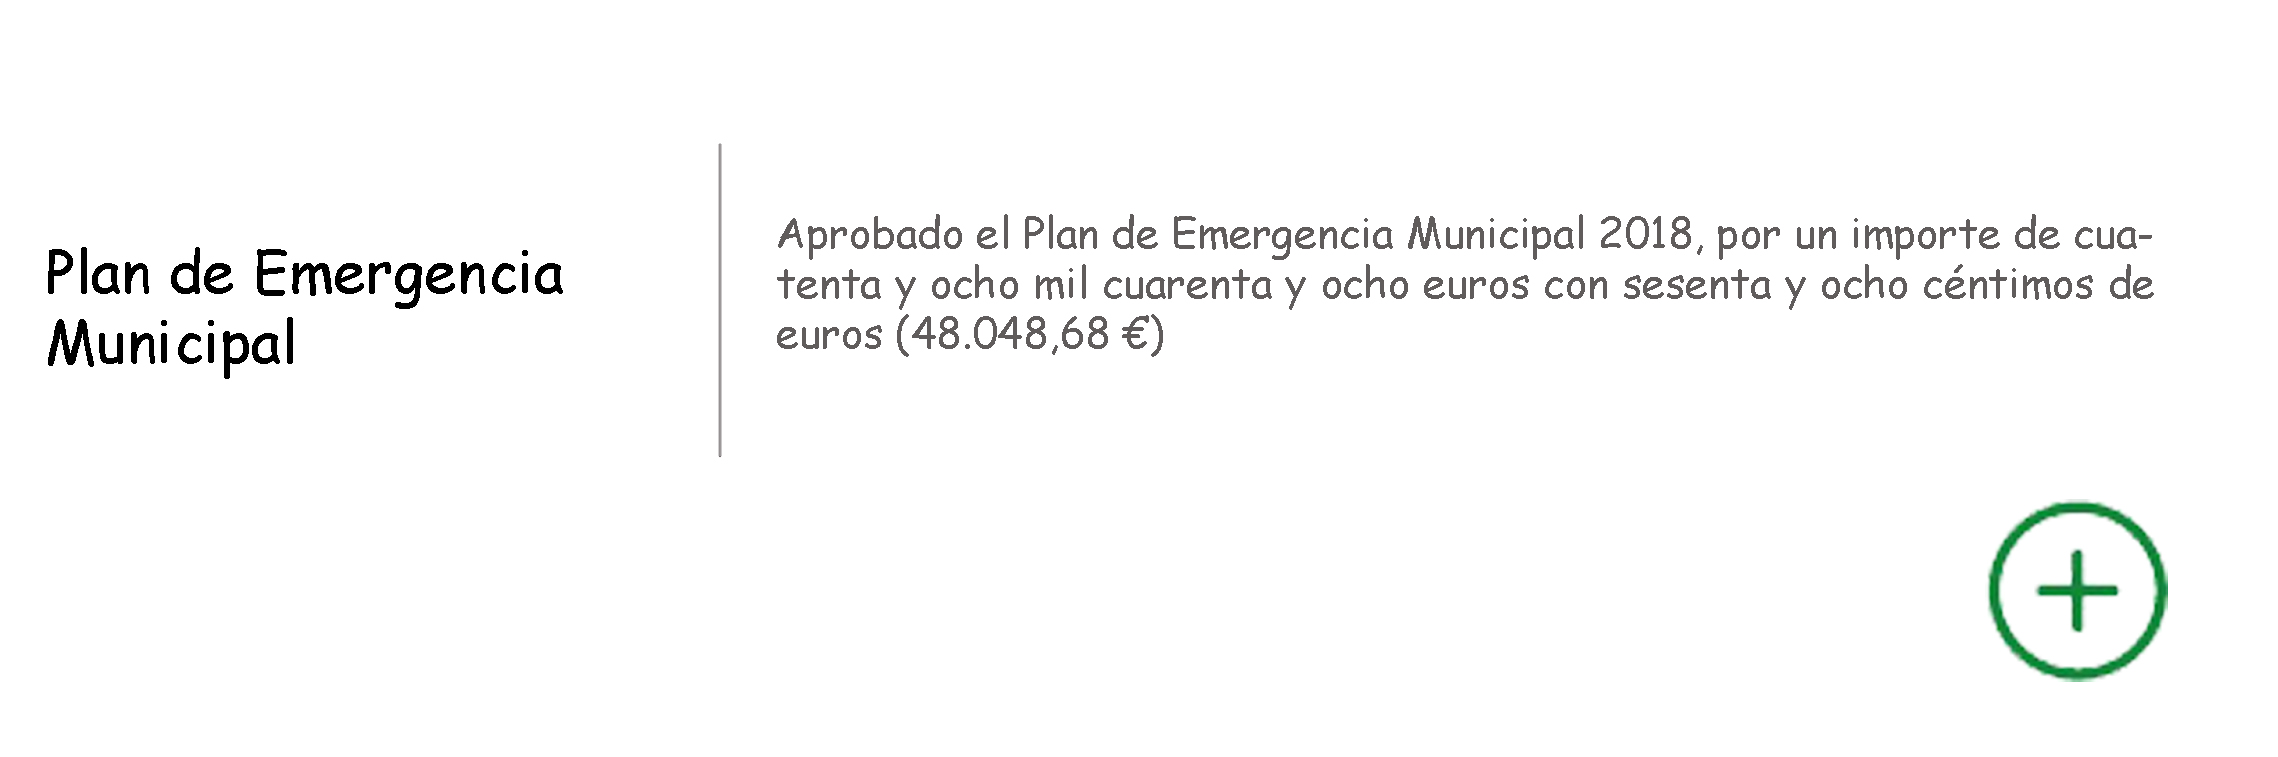 Plan de Emergencia Municipal